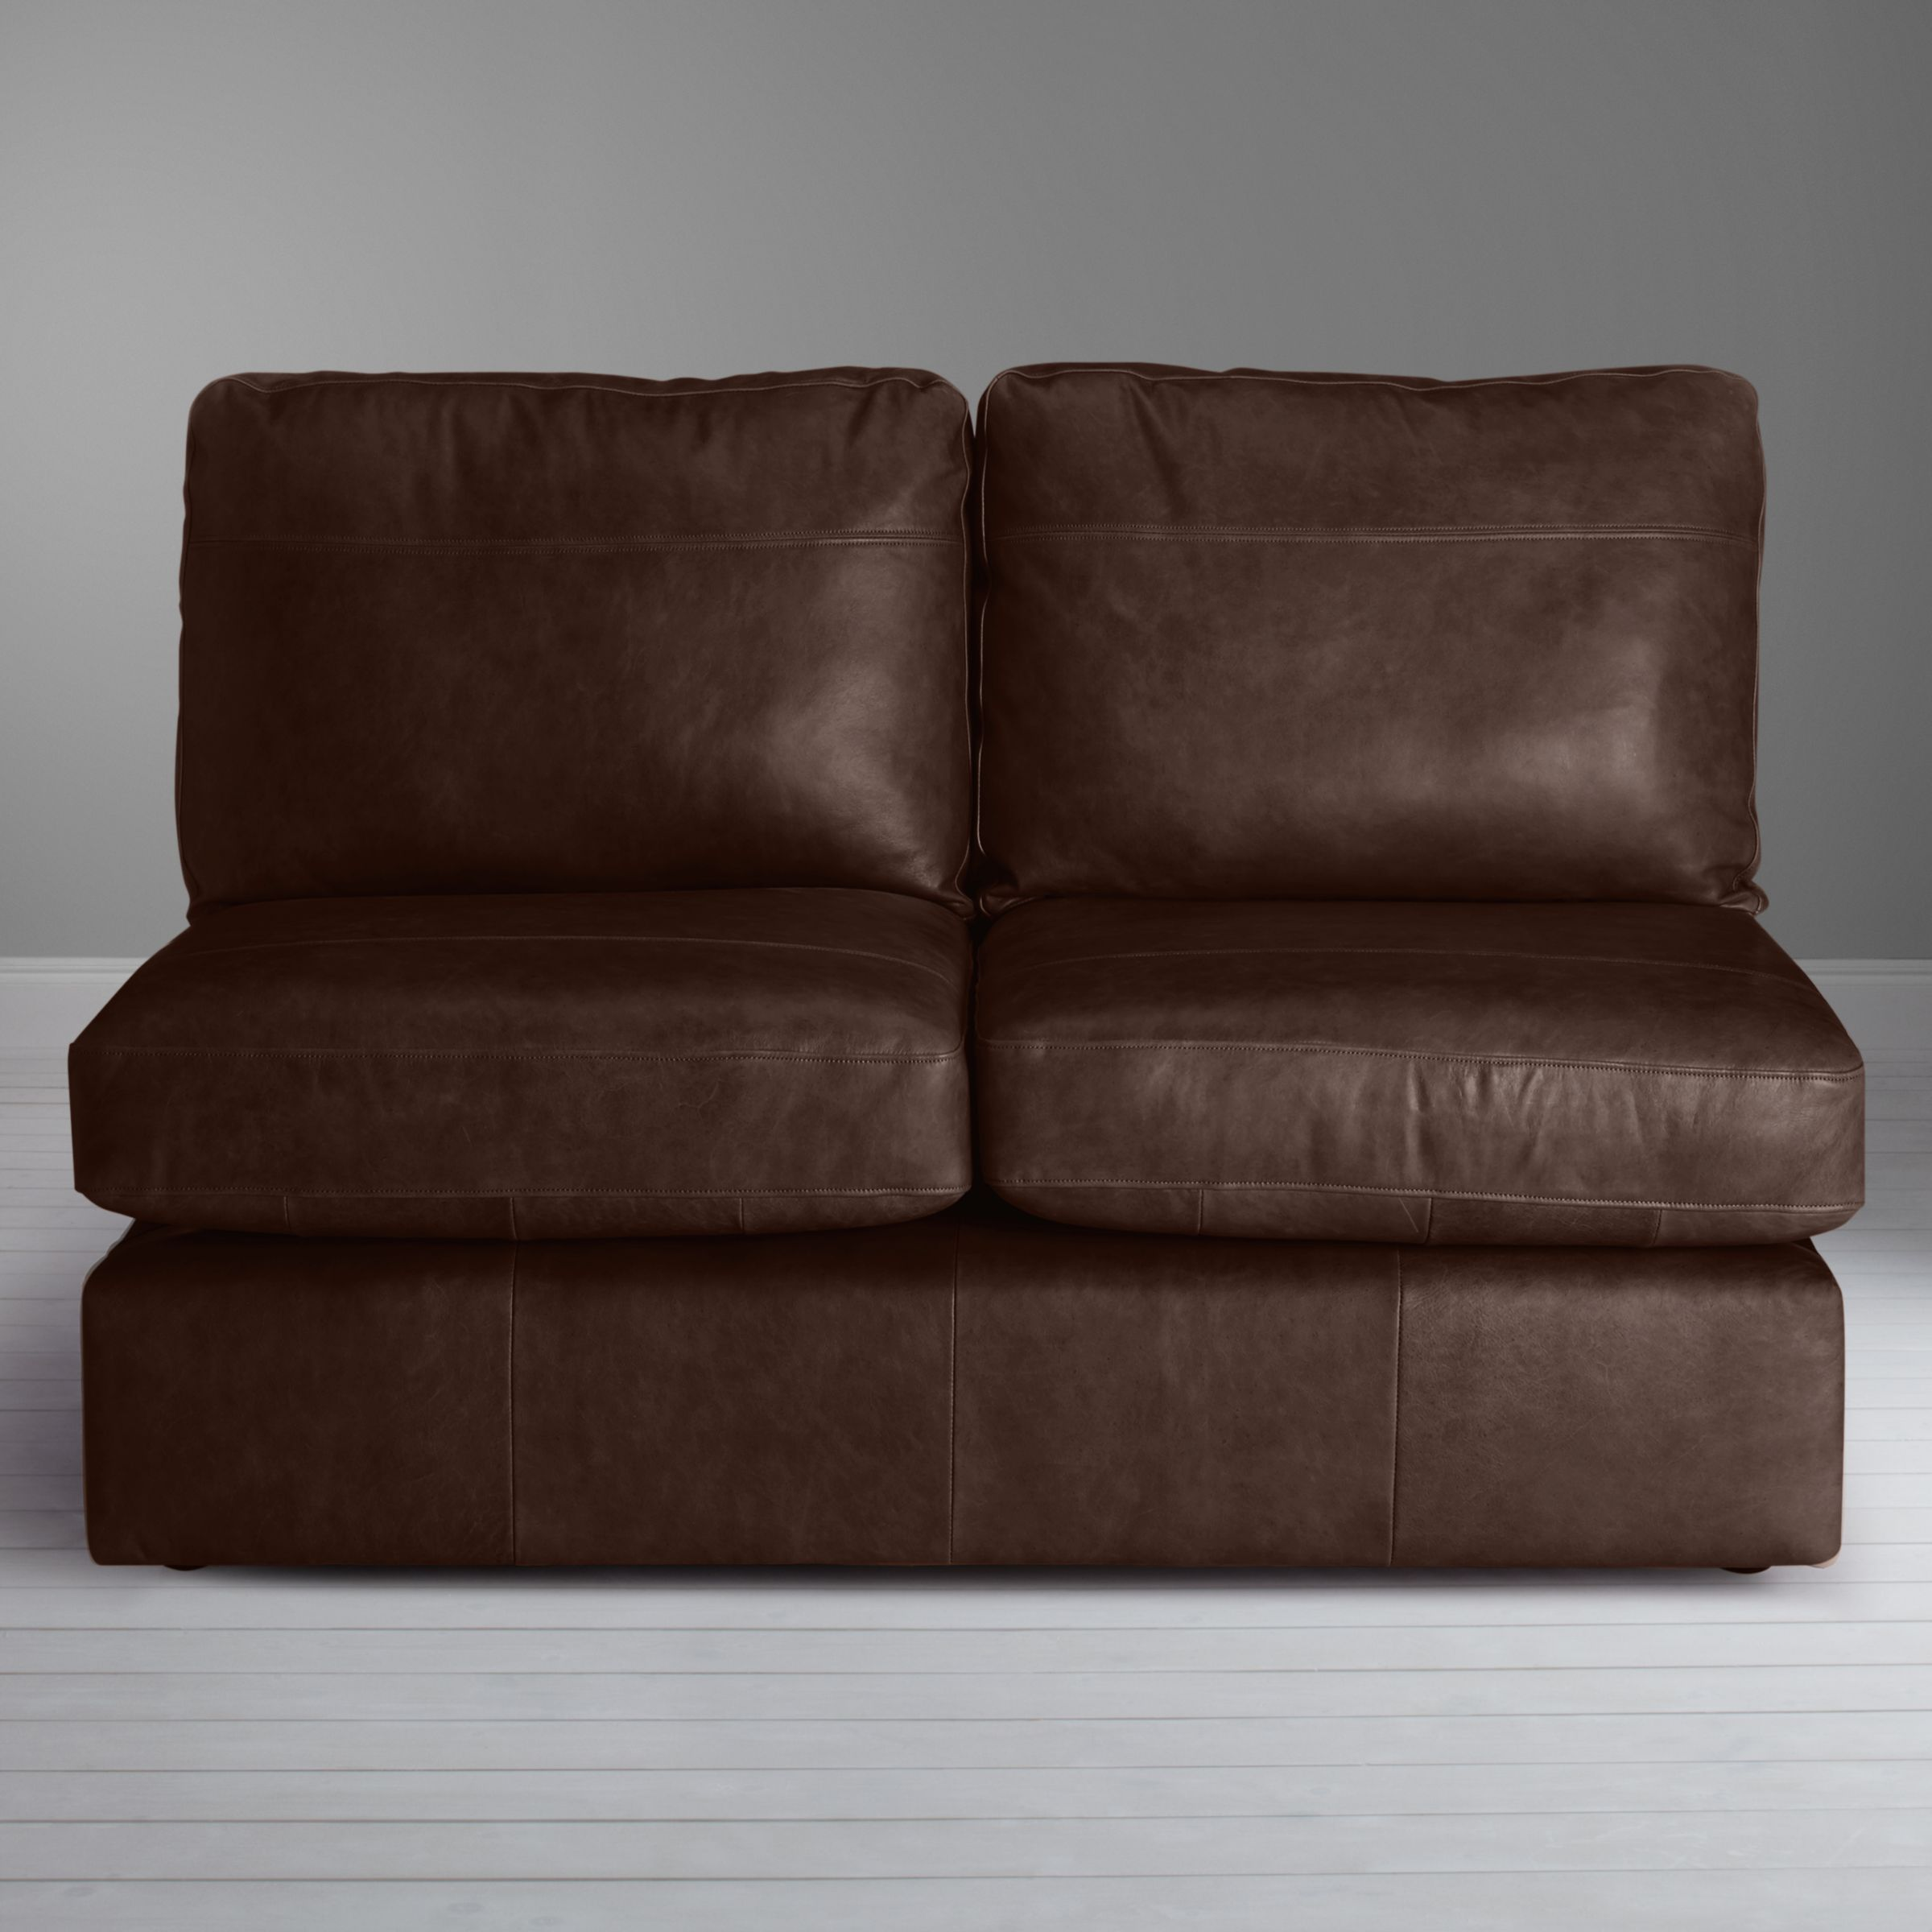 House By John Lewis Oliver Small 2 Seater Armless Leather Sofa Dark Leg Sofa House Love Seat